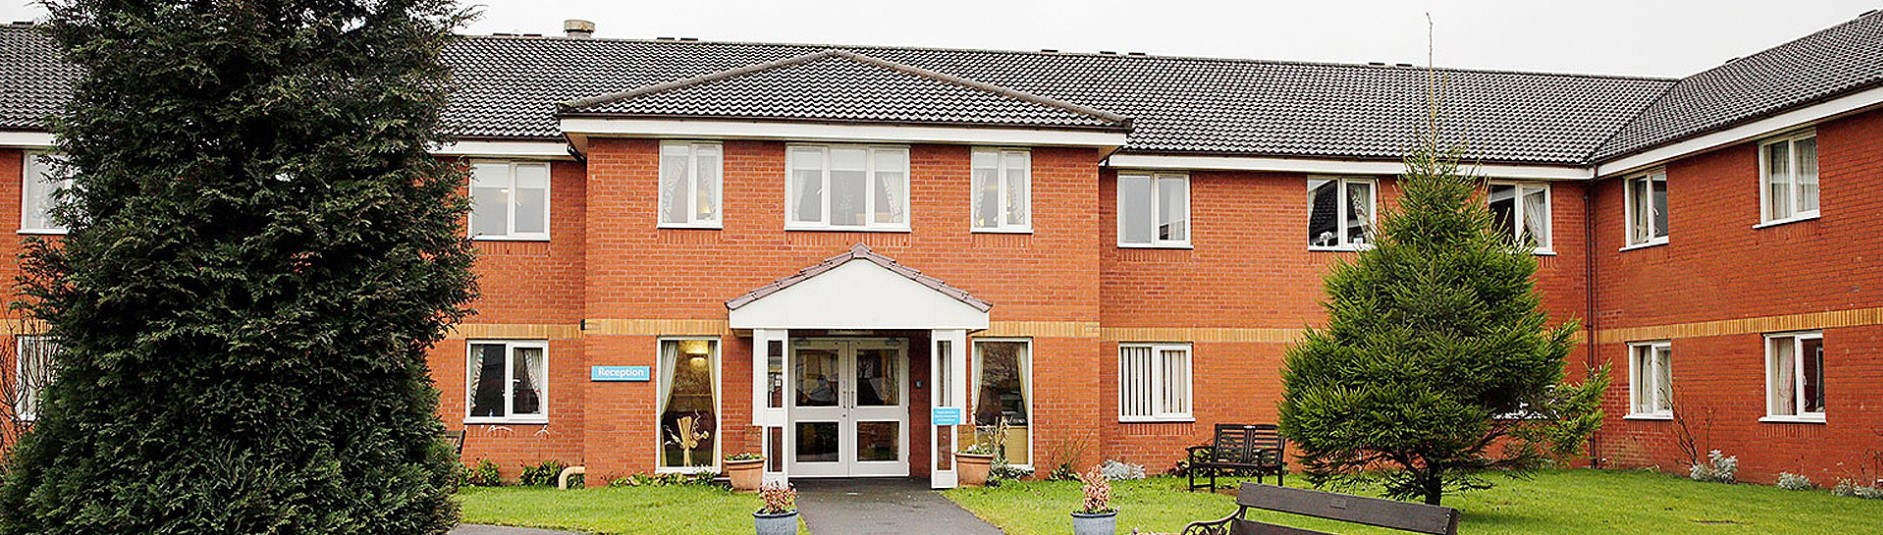 Newcarron Care Home front